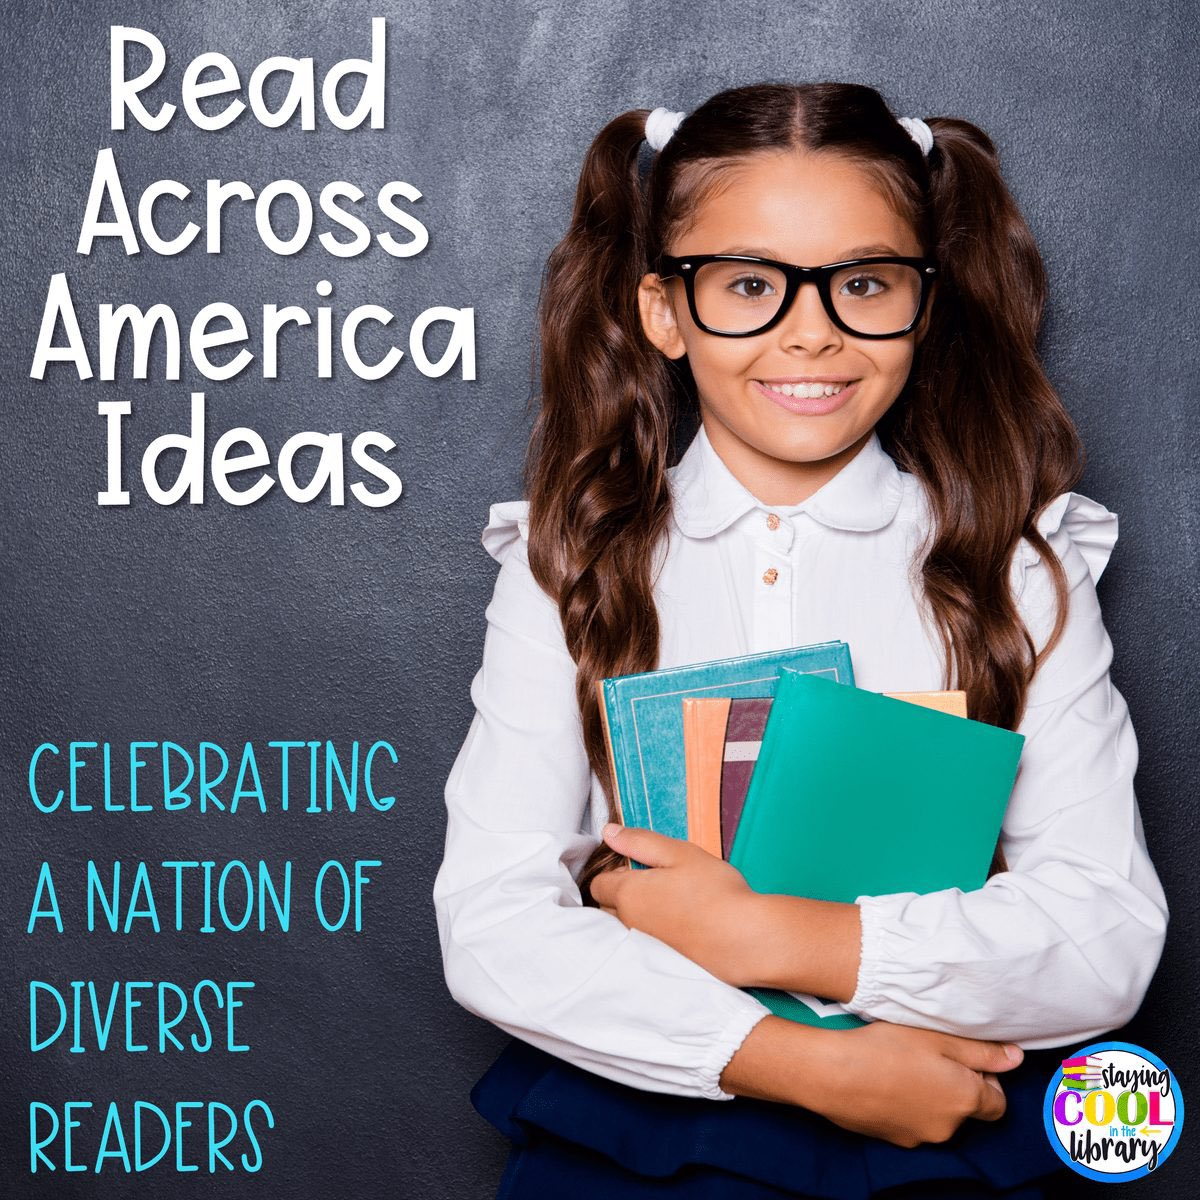 "@knoxreads @KnoxSchools @ReadCityUSA ⭐️On #ReadAcrossAmericaDay please remember to be inclusive. Too often students with disabilities like #dyslexia or low vision feel left out and ashamed they can not participate. The words ""audio books welcome"" are simple. Thank you. Enjoy a fun day reading! 📚"